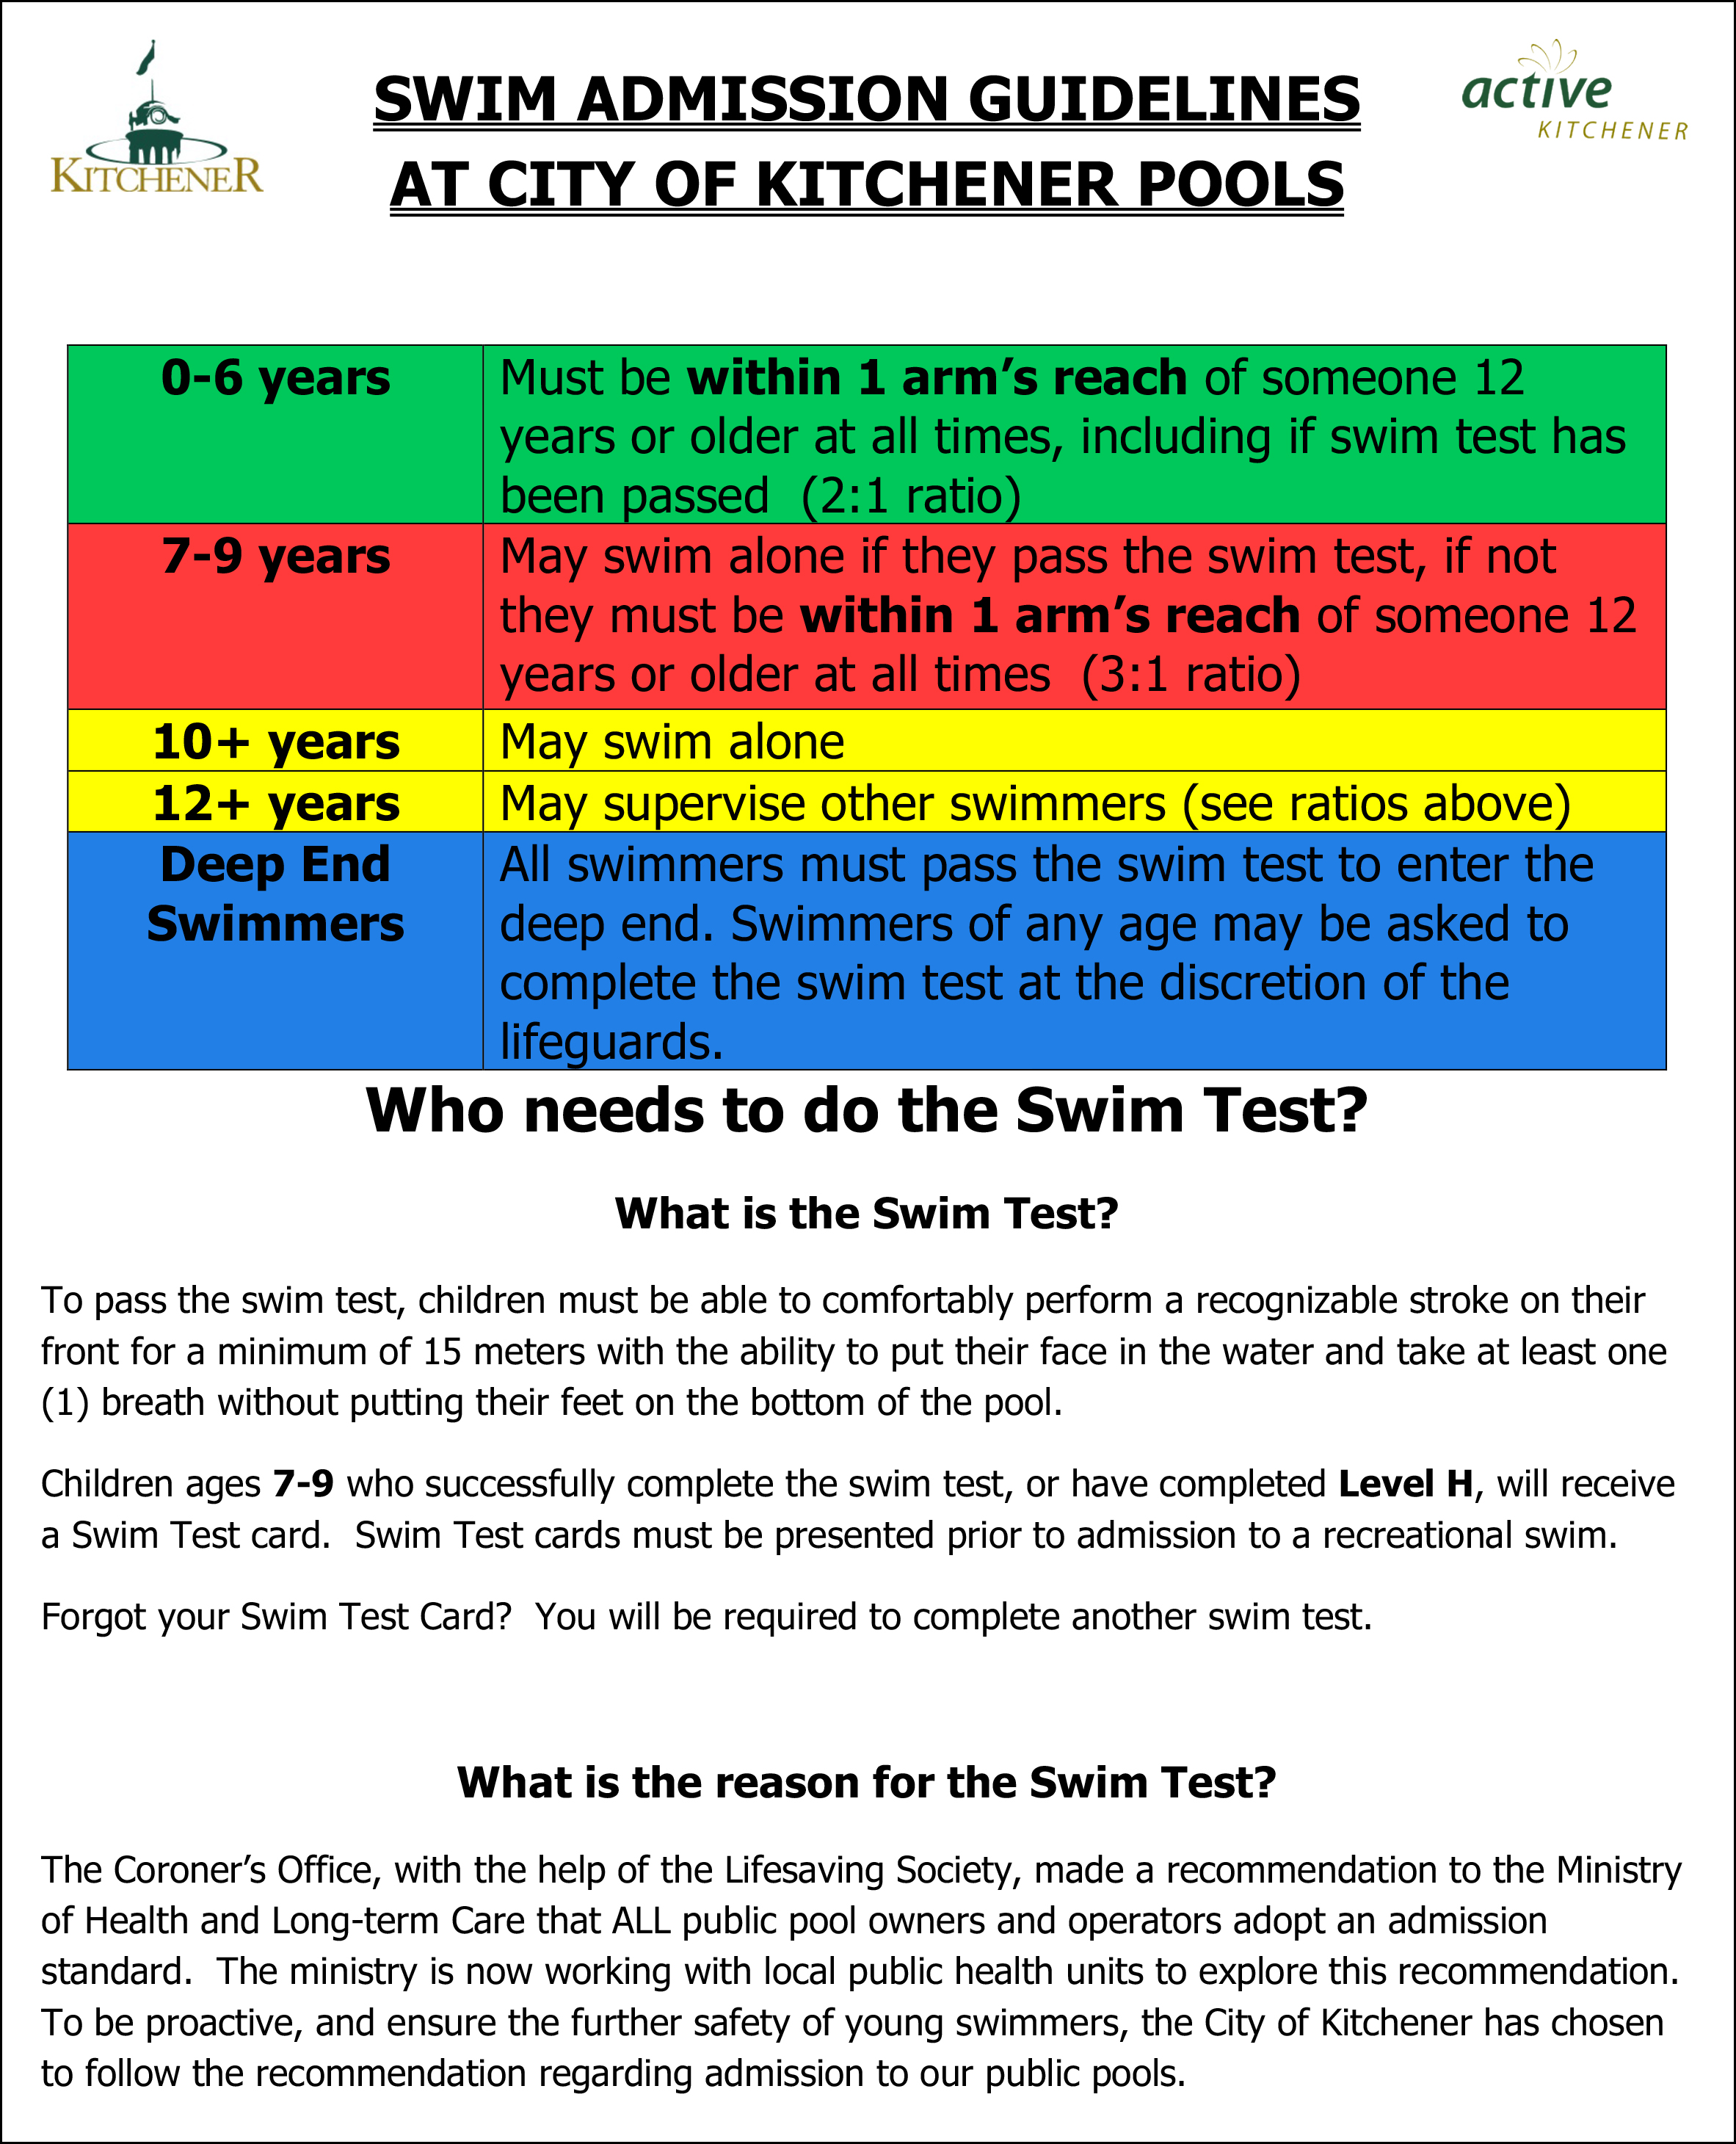 Microsoft Word - NEW Swim Admission Guidelines.docx